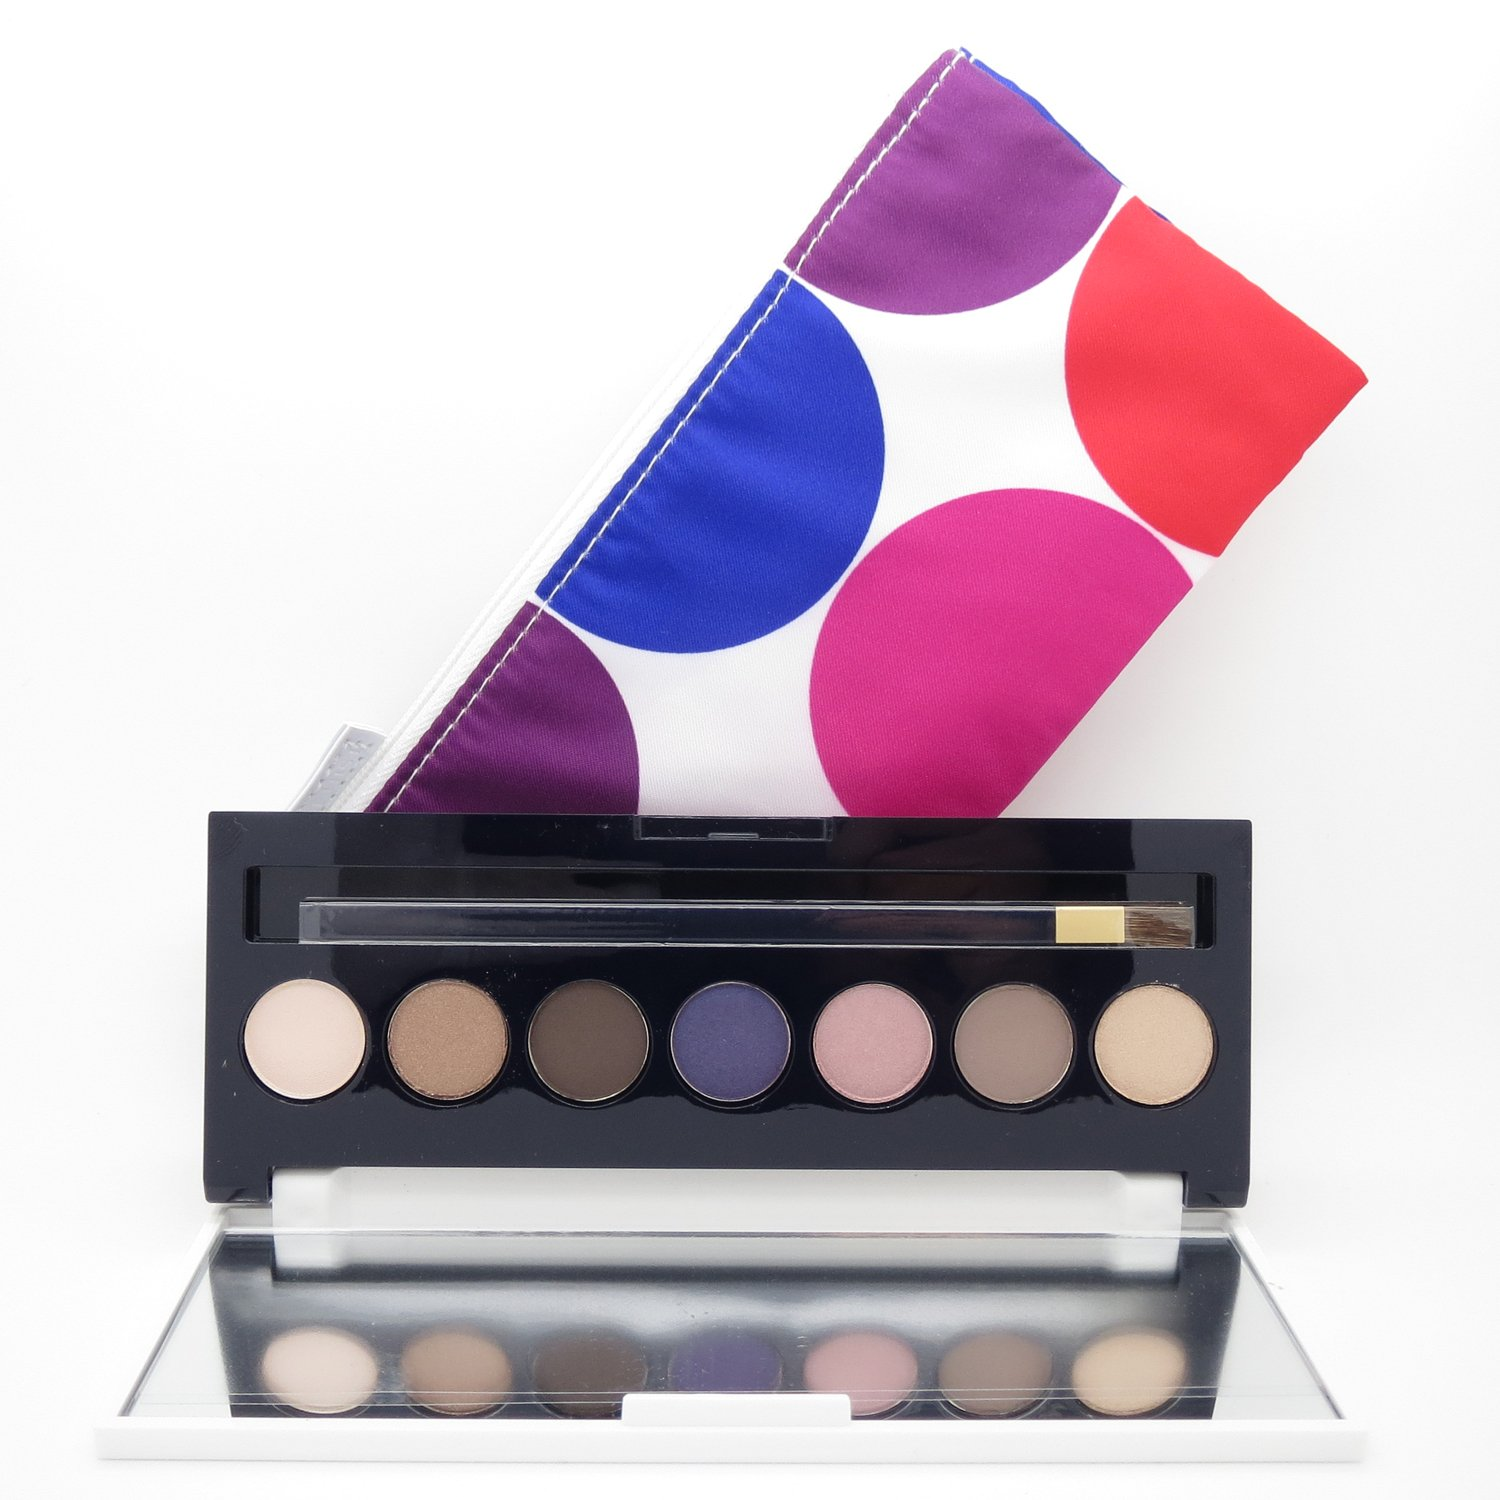 Estee Lauder - Estee Lauder Lisa Perry Pure Color Eyeshadow 7 Colors